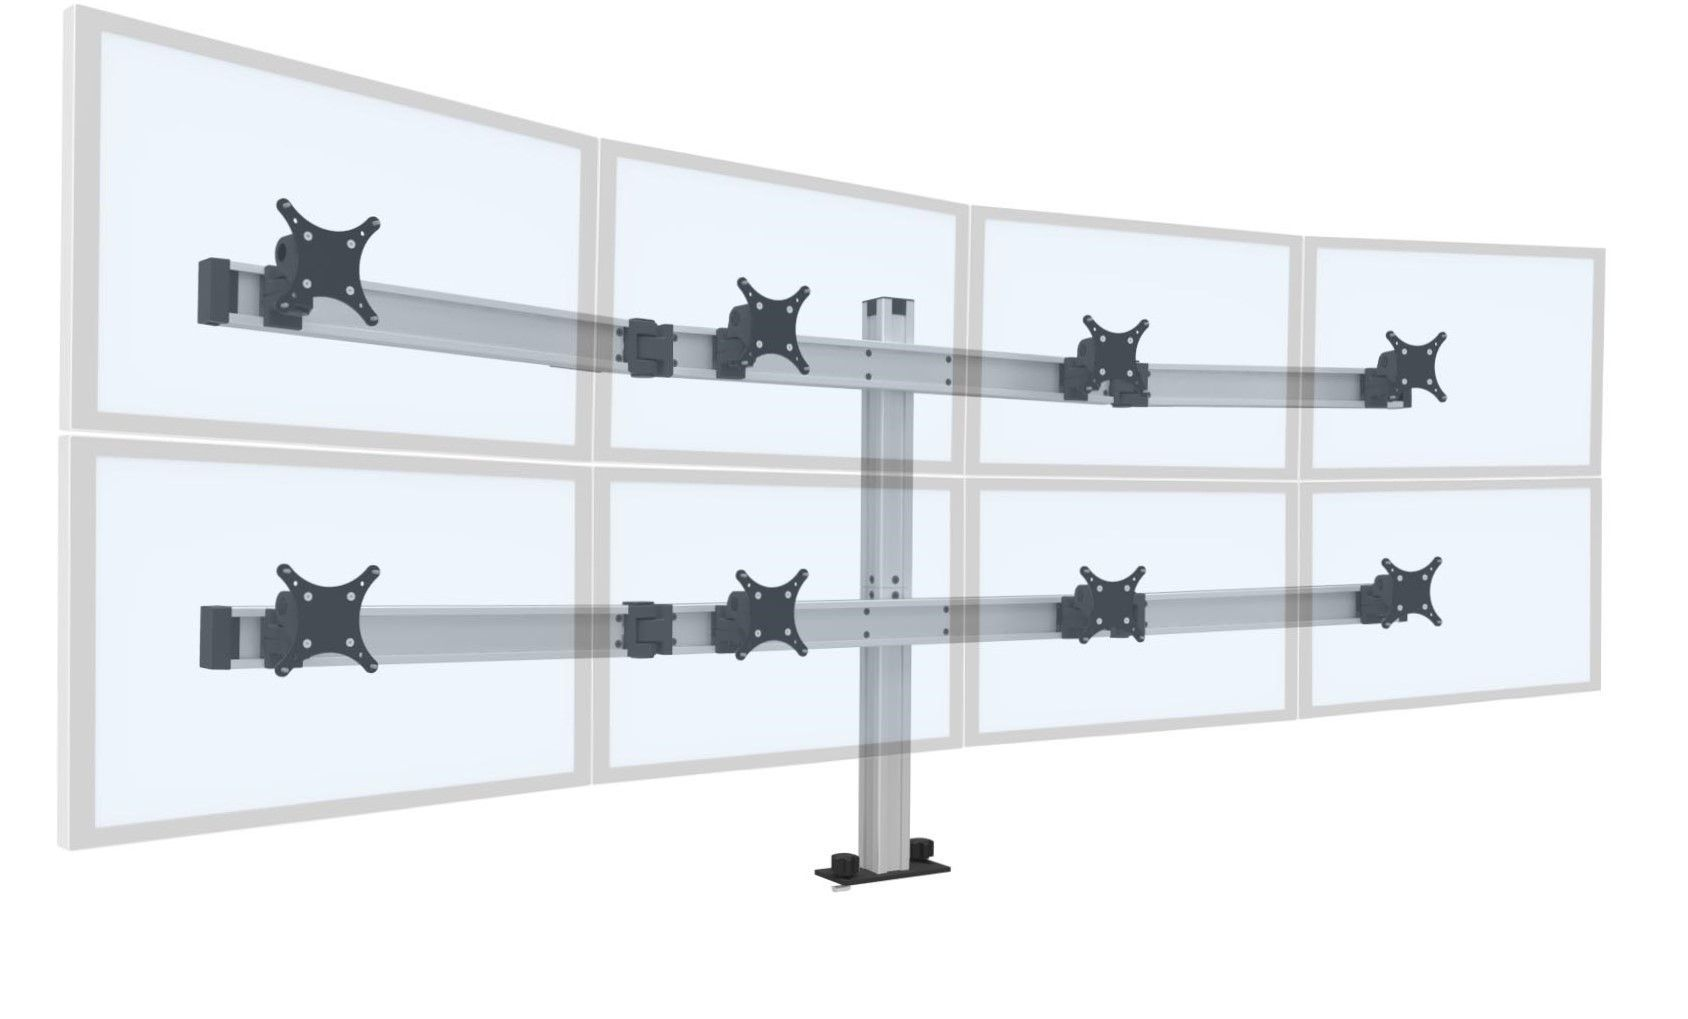 "INNOVATIVE BILD ADJUSTABLE MONITOR STAND #BILD-4OVER4 FOR A  TOTAL OF UP TO EIGHT 28"" MONITORS. VIDEO:<font color=#c60><b>ADD TO CART FOR FREE SHIPPING.</font></b> VIDEO BELOW. </b></font>"